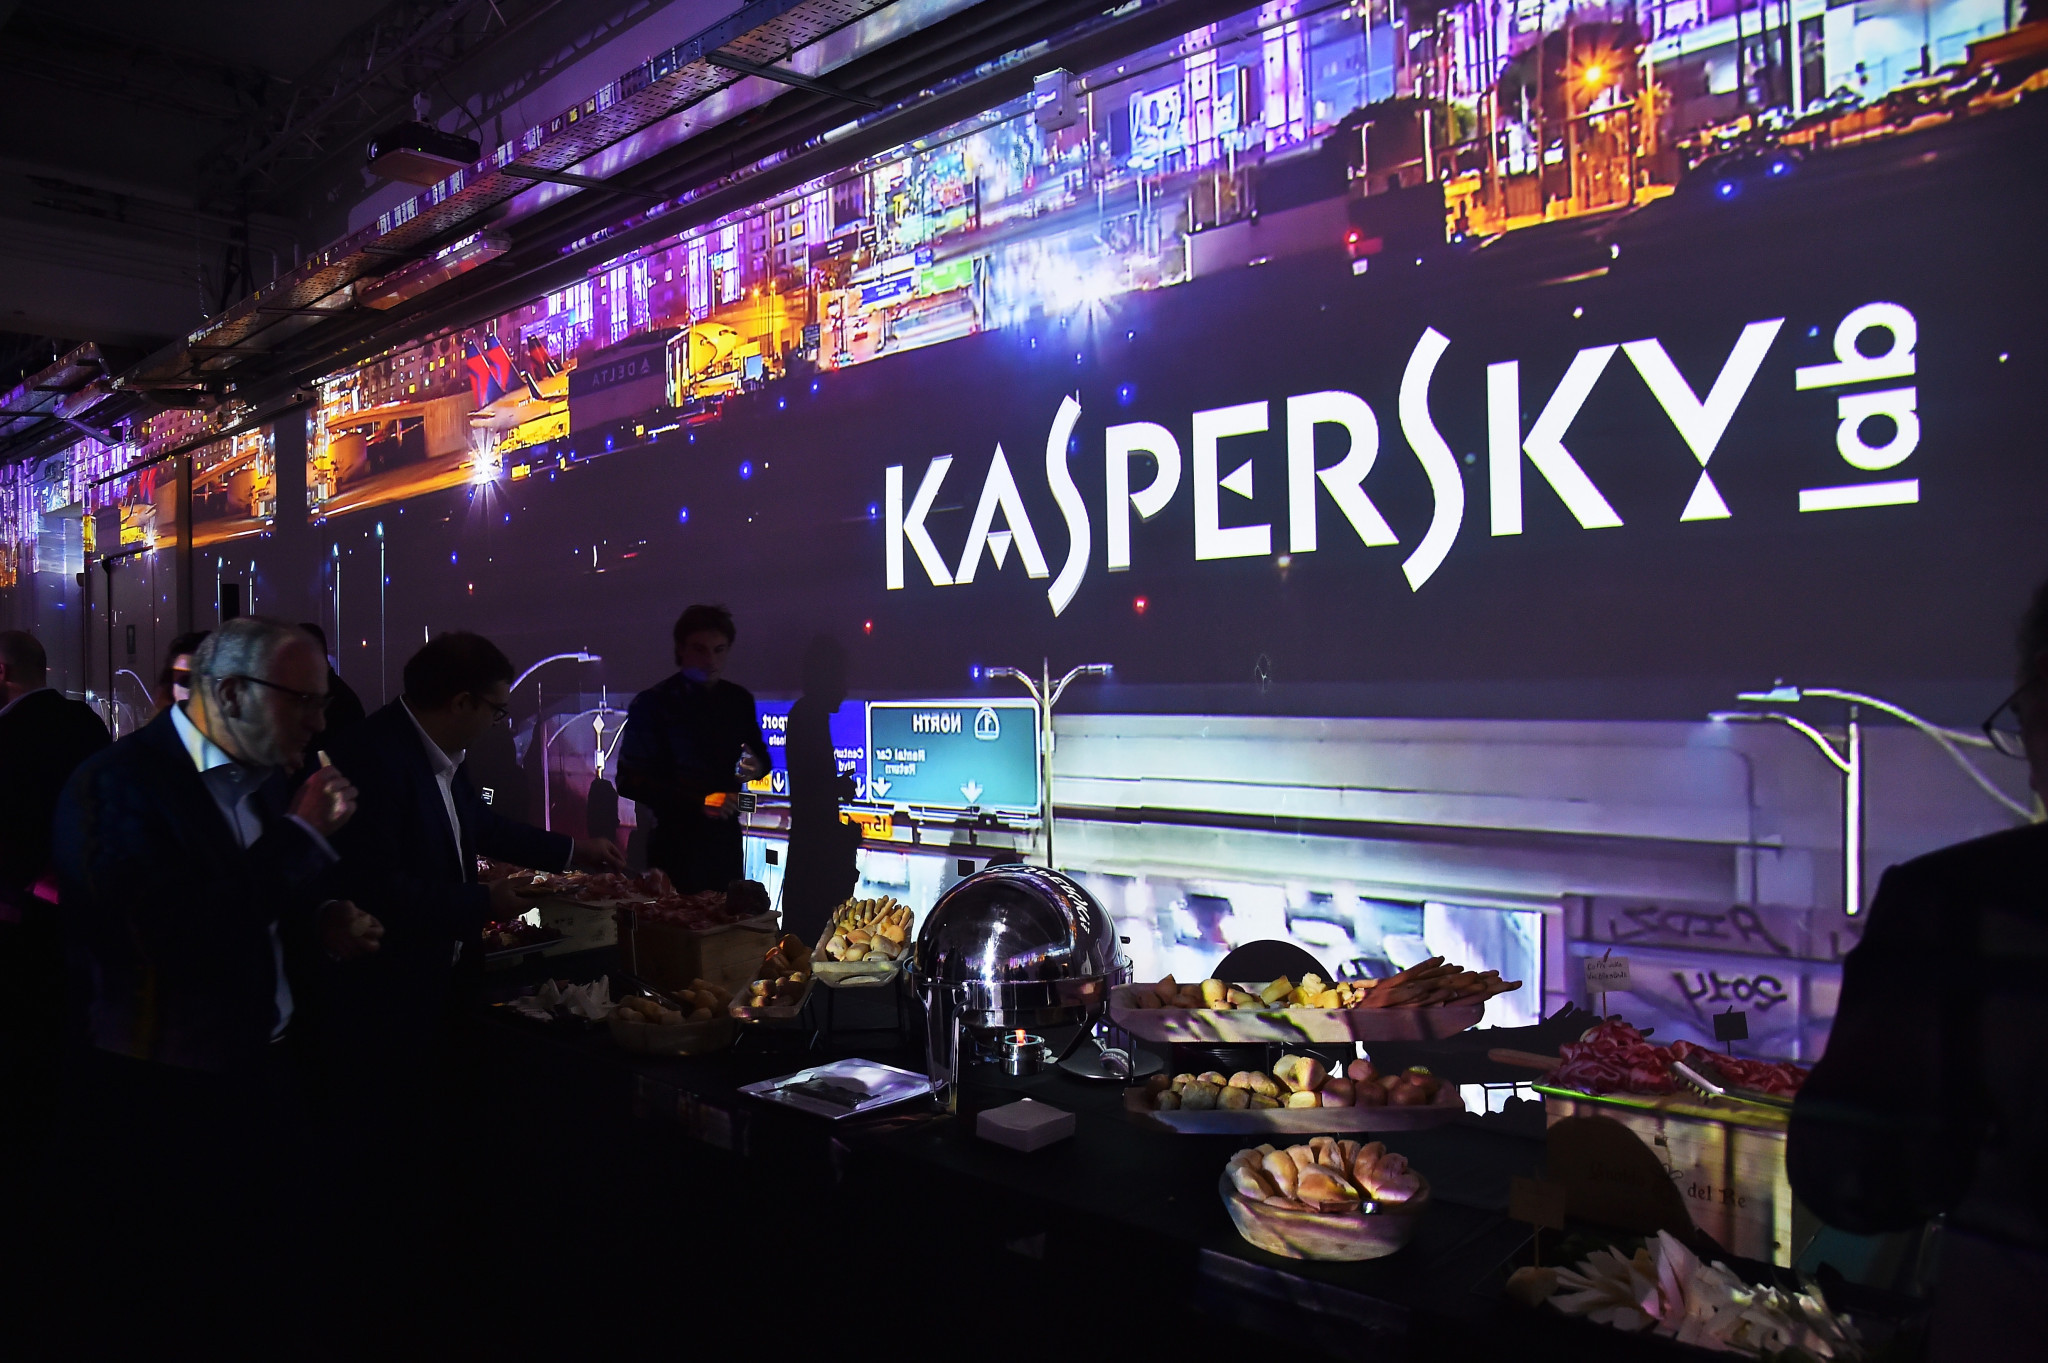 Kaspersky claim still unclear who carried out Olympic cyber-attack